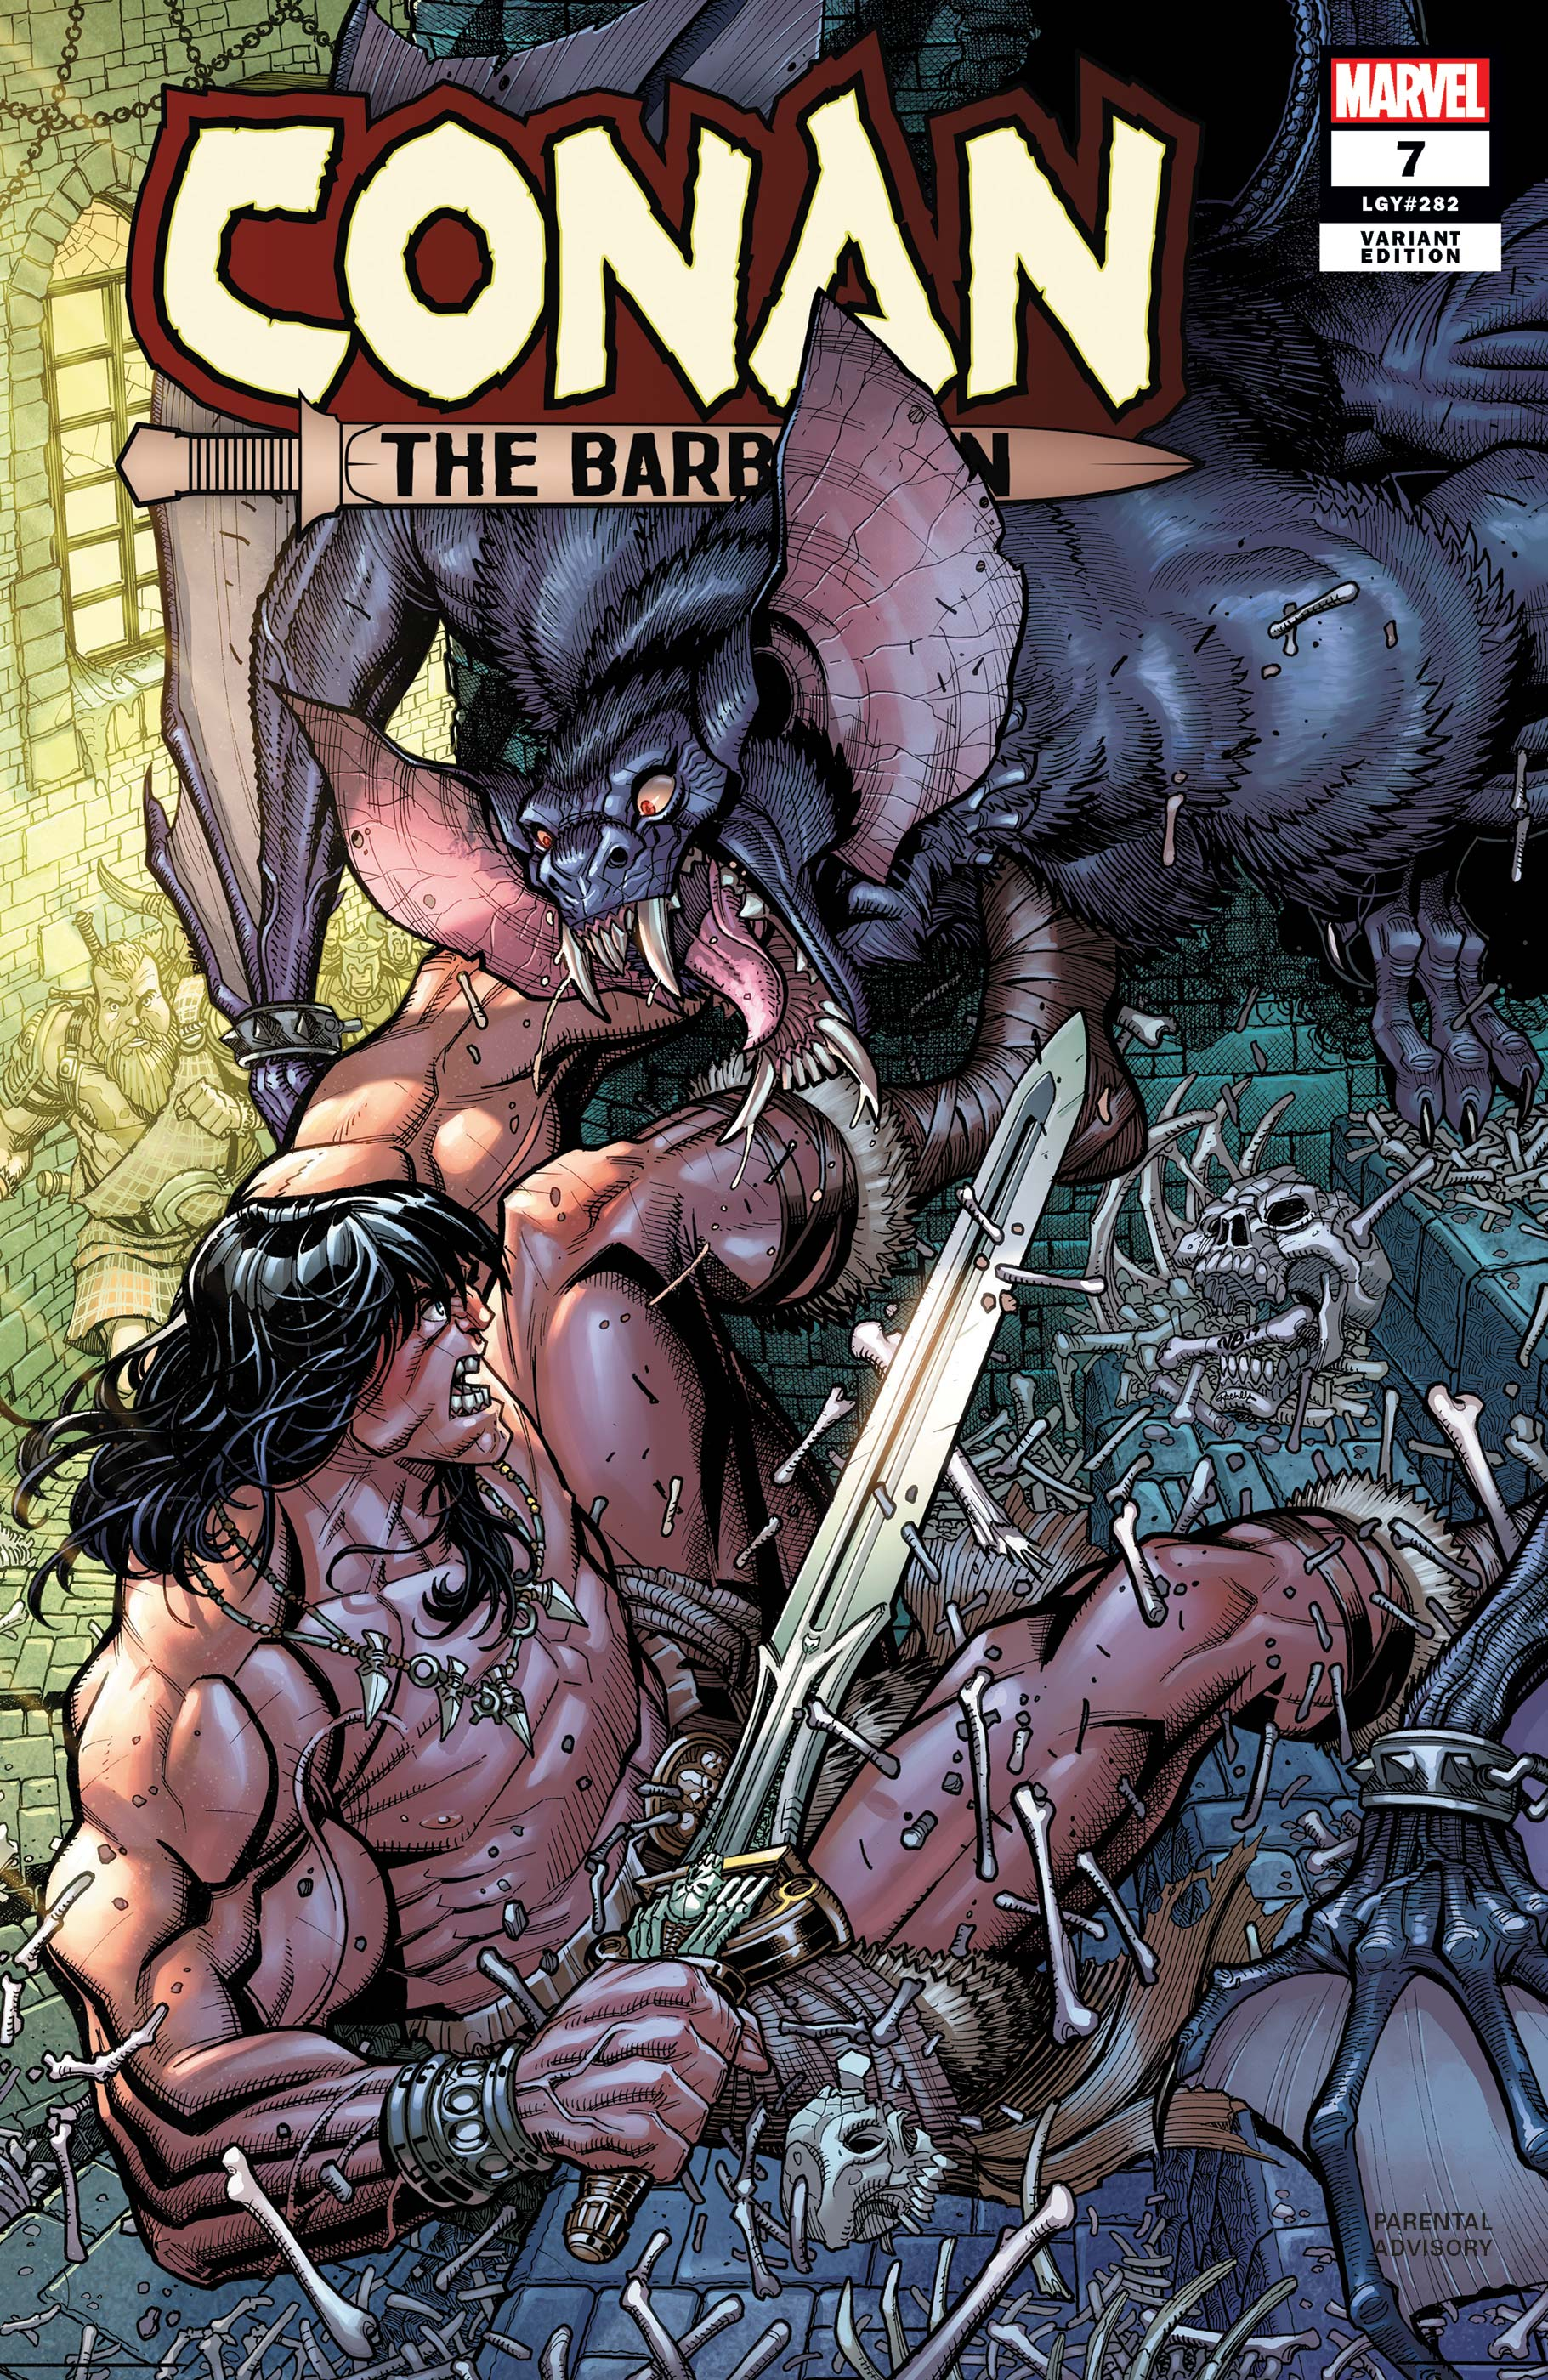 Conan the Barbarian (2019) #7 (Variant)